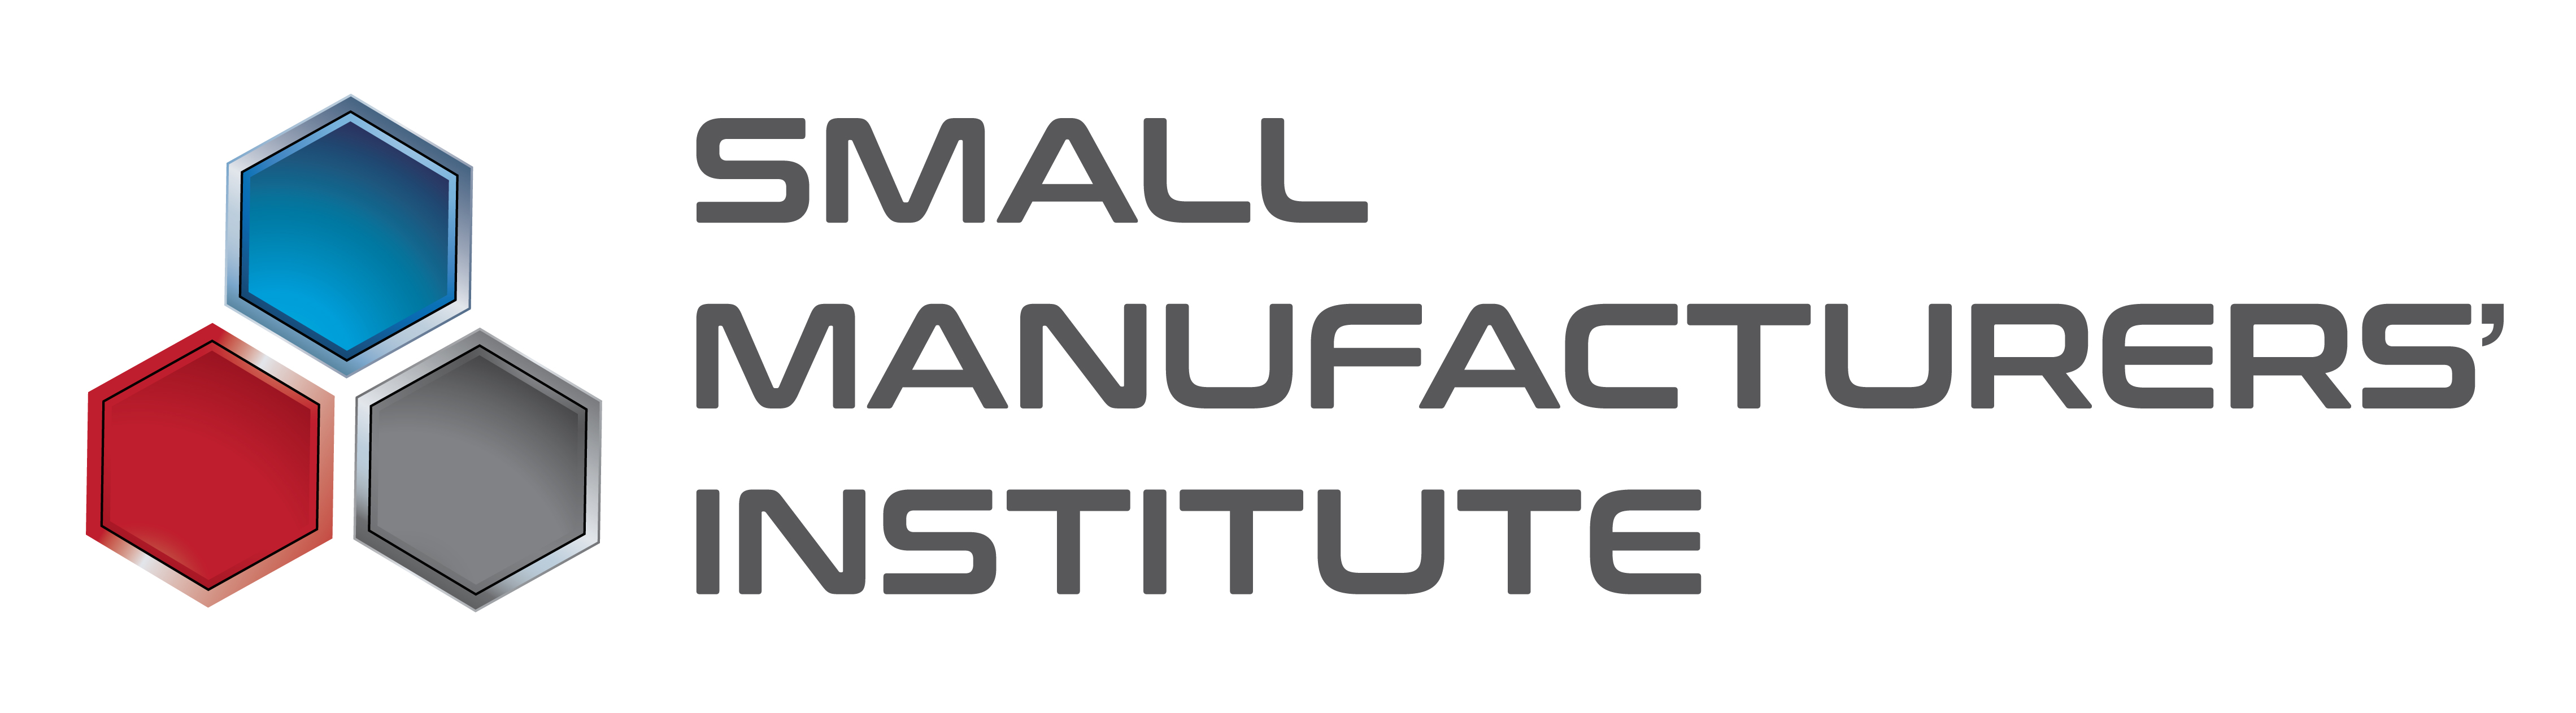 Small Manufacturers Institute